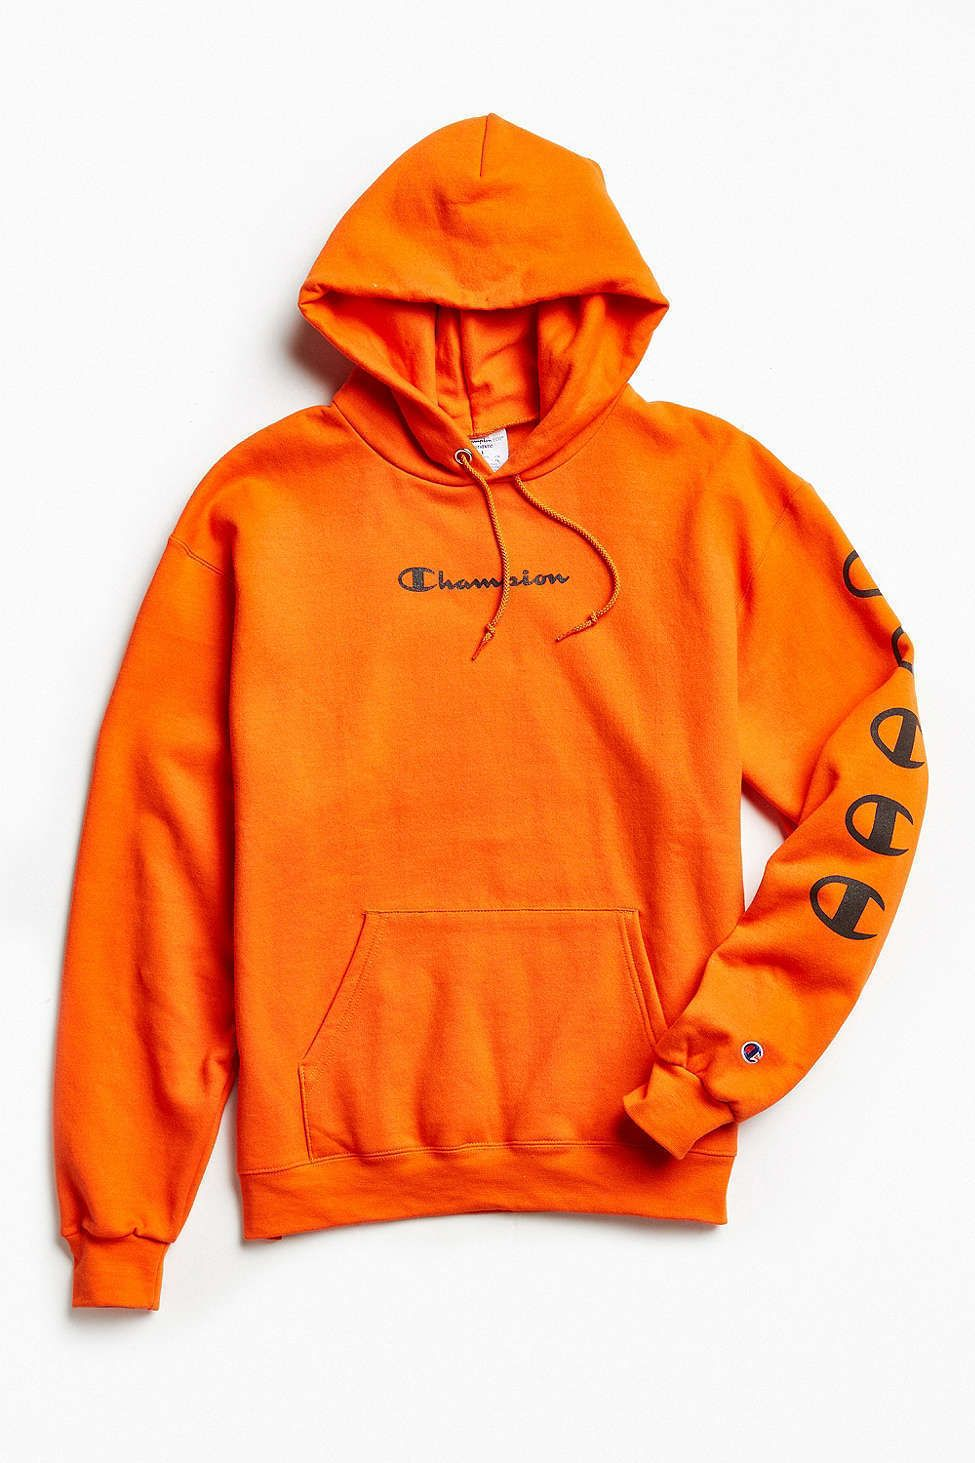 Staff 2018 New Cotton Orange Letter Kanye West Purpose Hip Hop Skateboard Hoodies Men Full High Street Sweatshirts London Men's Clothing